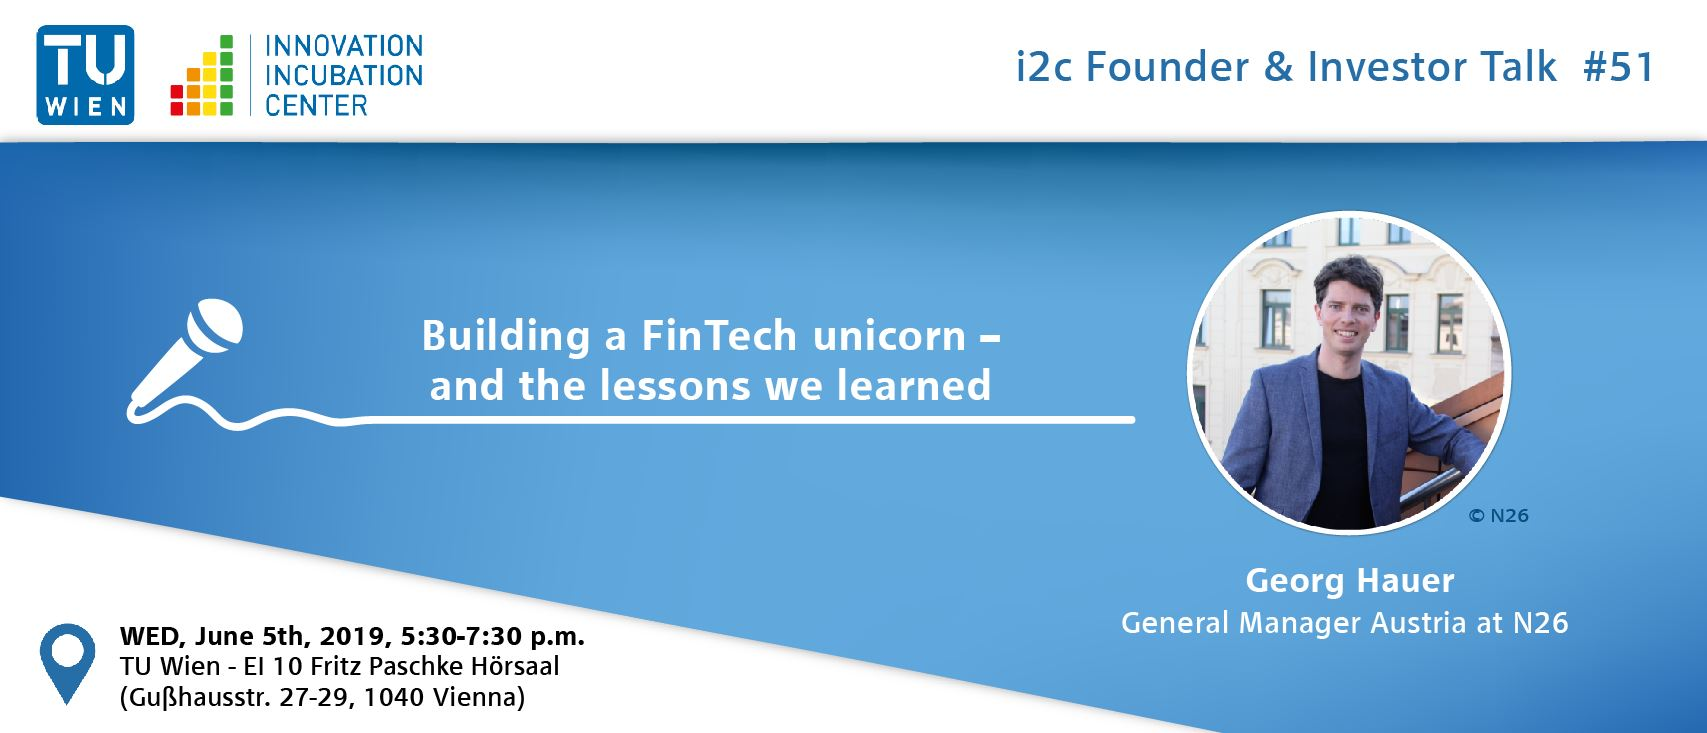 "i²c Founder & Investor Talk #51: ""Building a FinTech unicorn – and the lessons we learned"" by Georg Hauer"